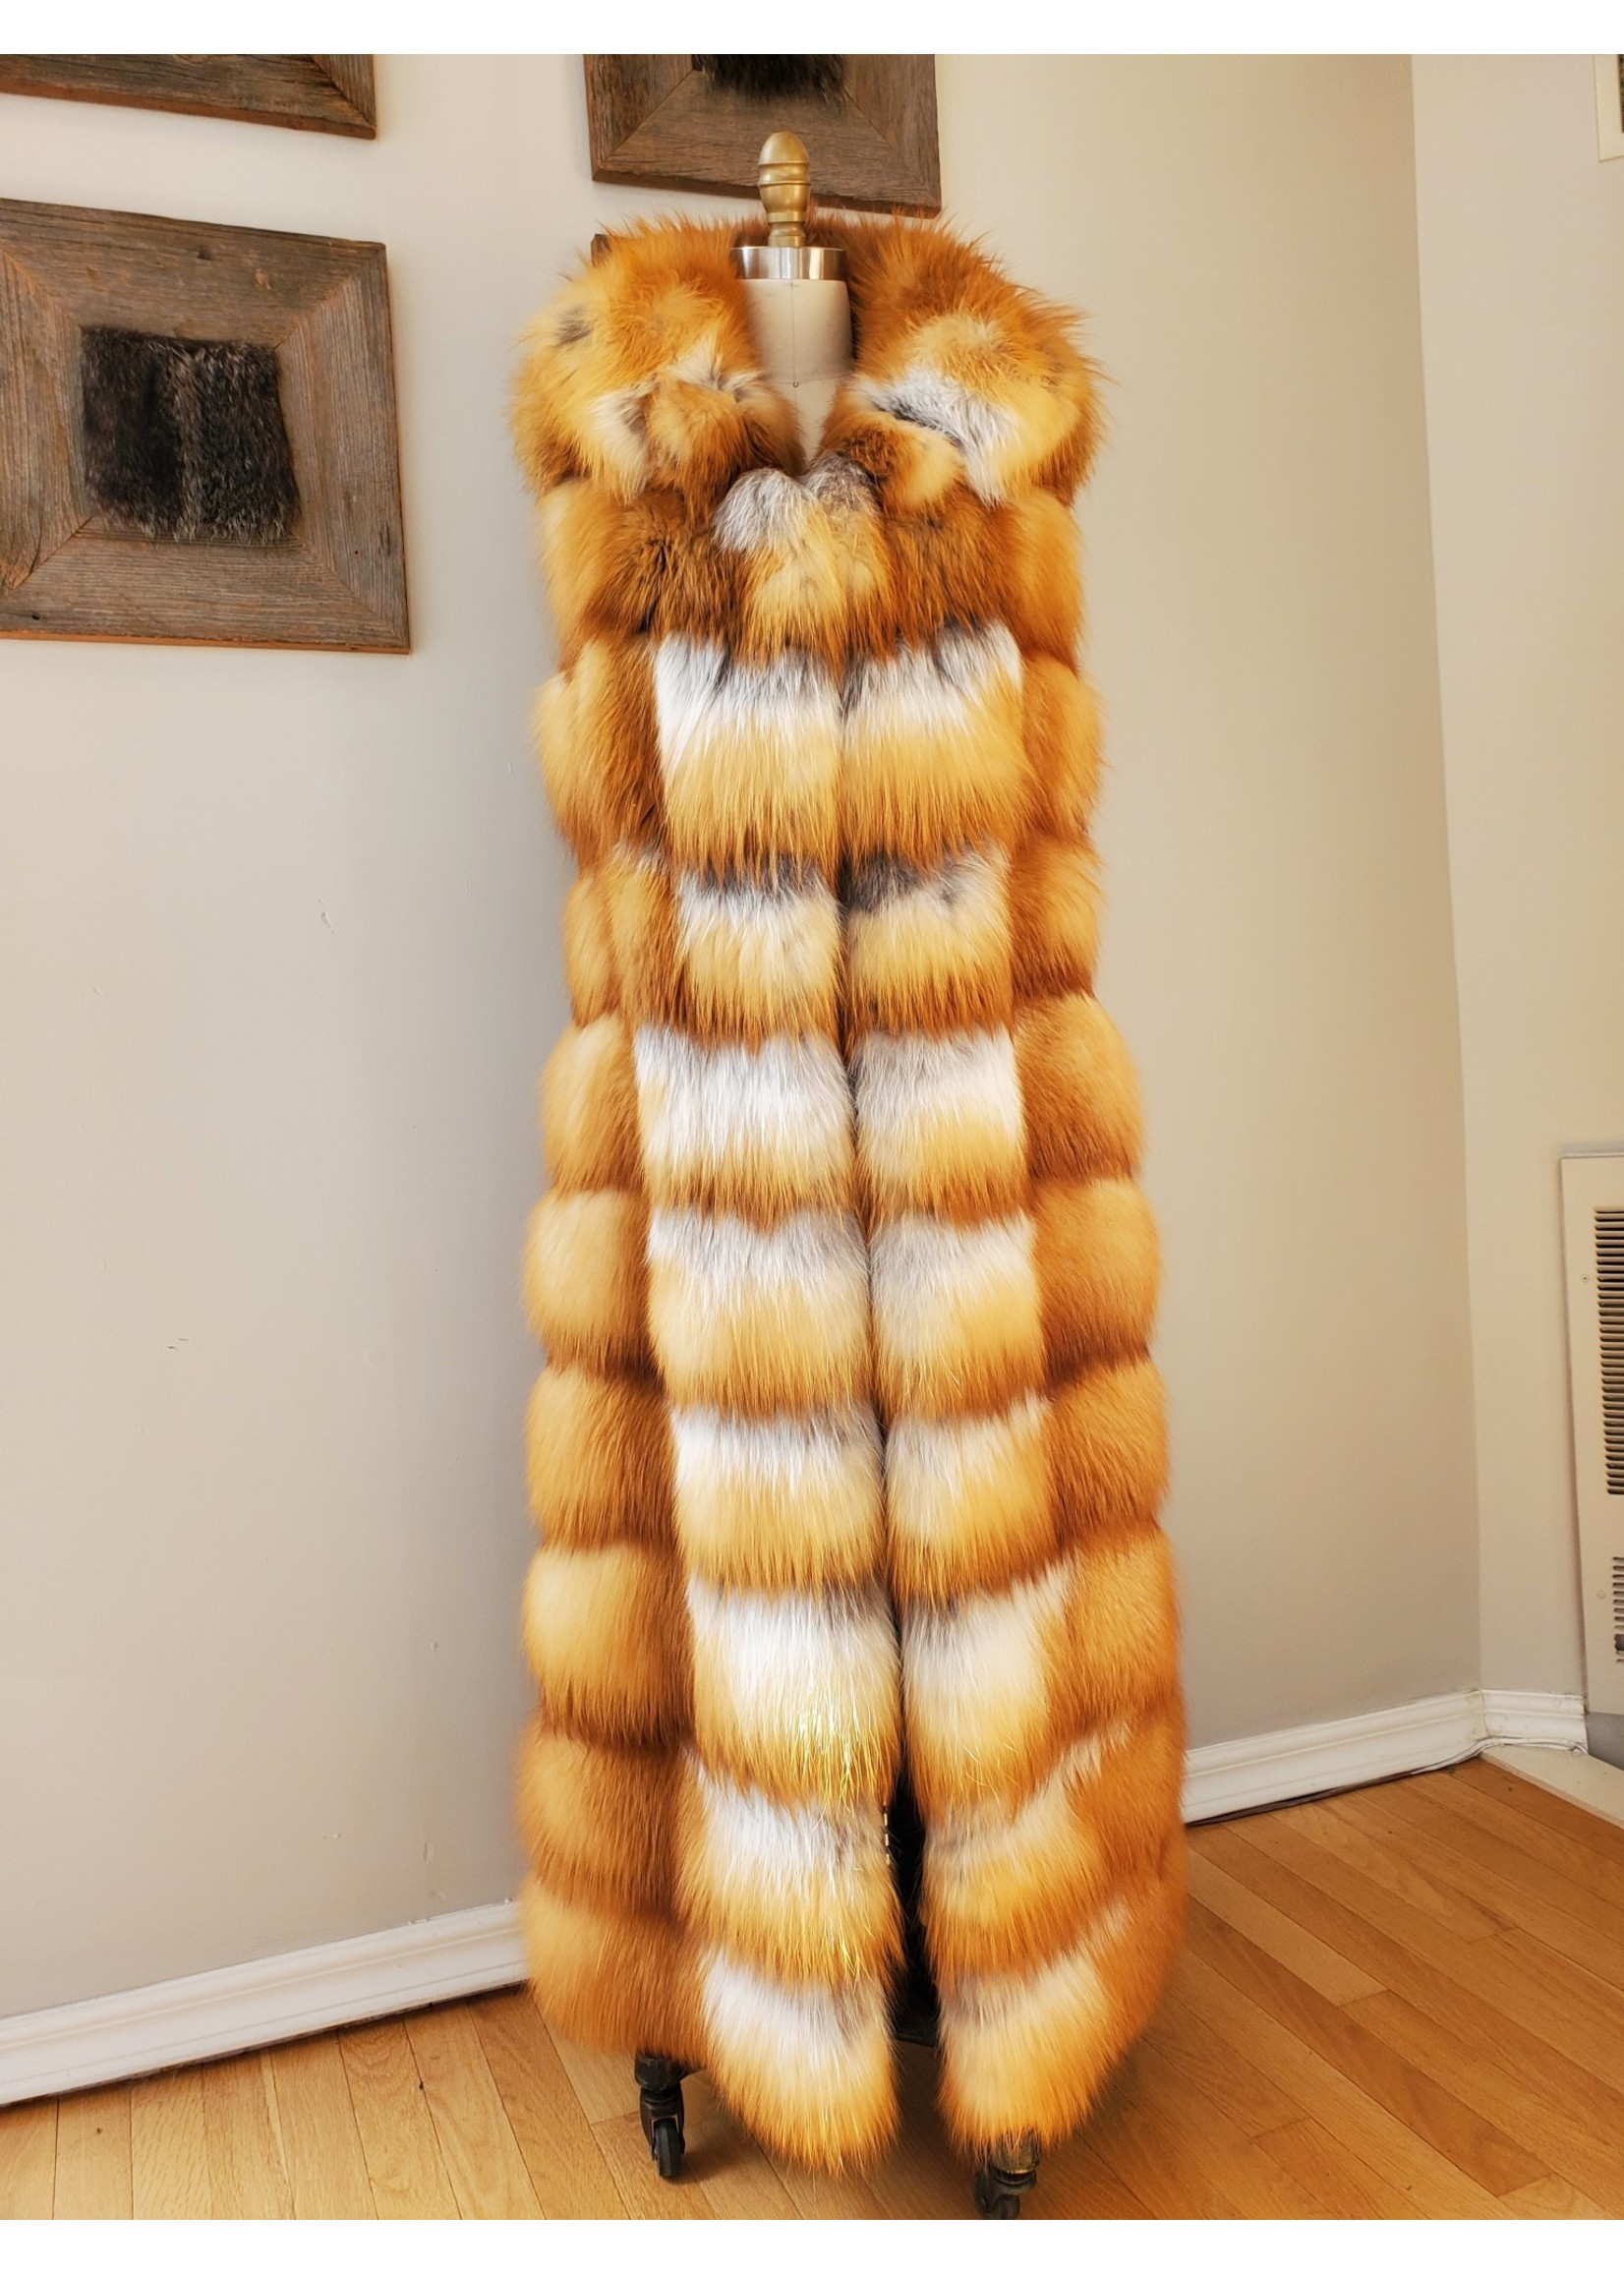 GIANFRANCO FERRÉ LONG FUR VEST